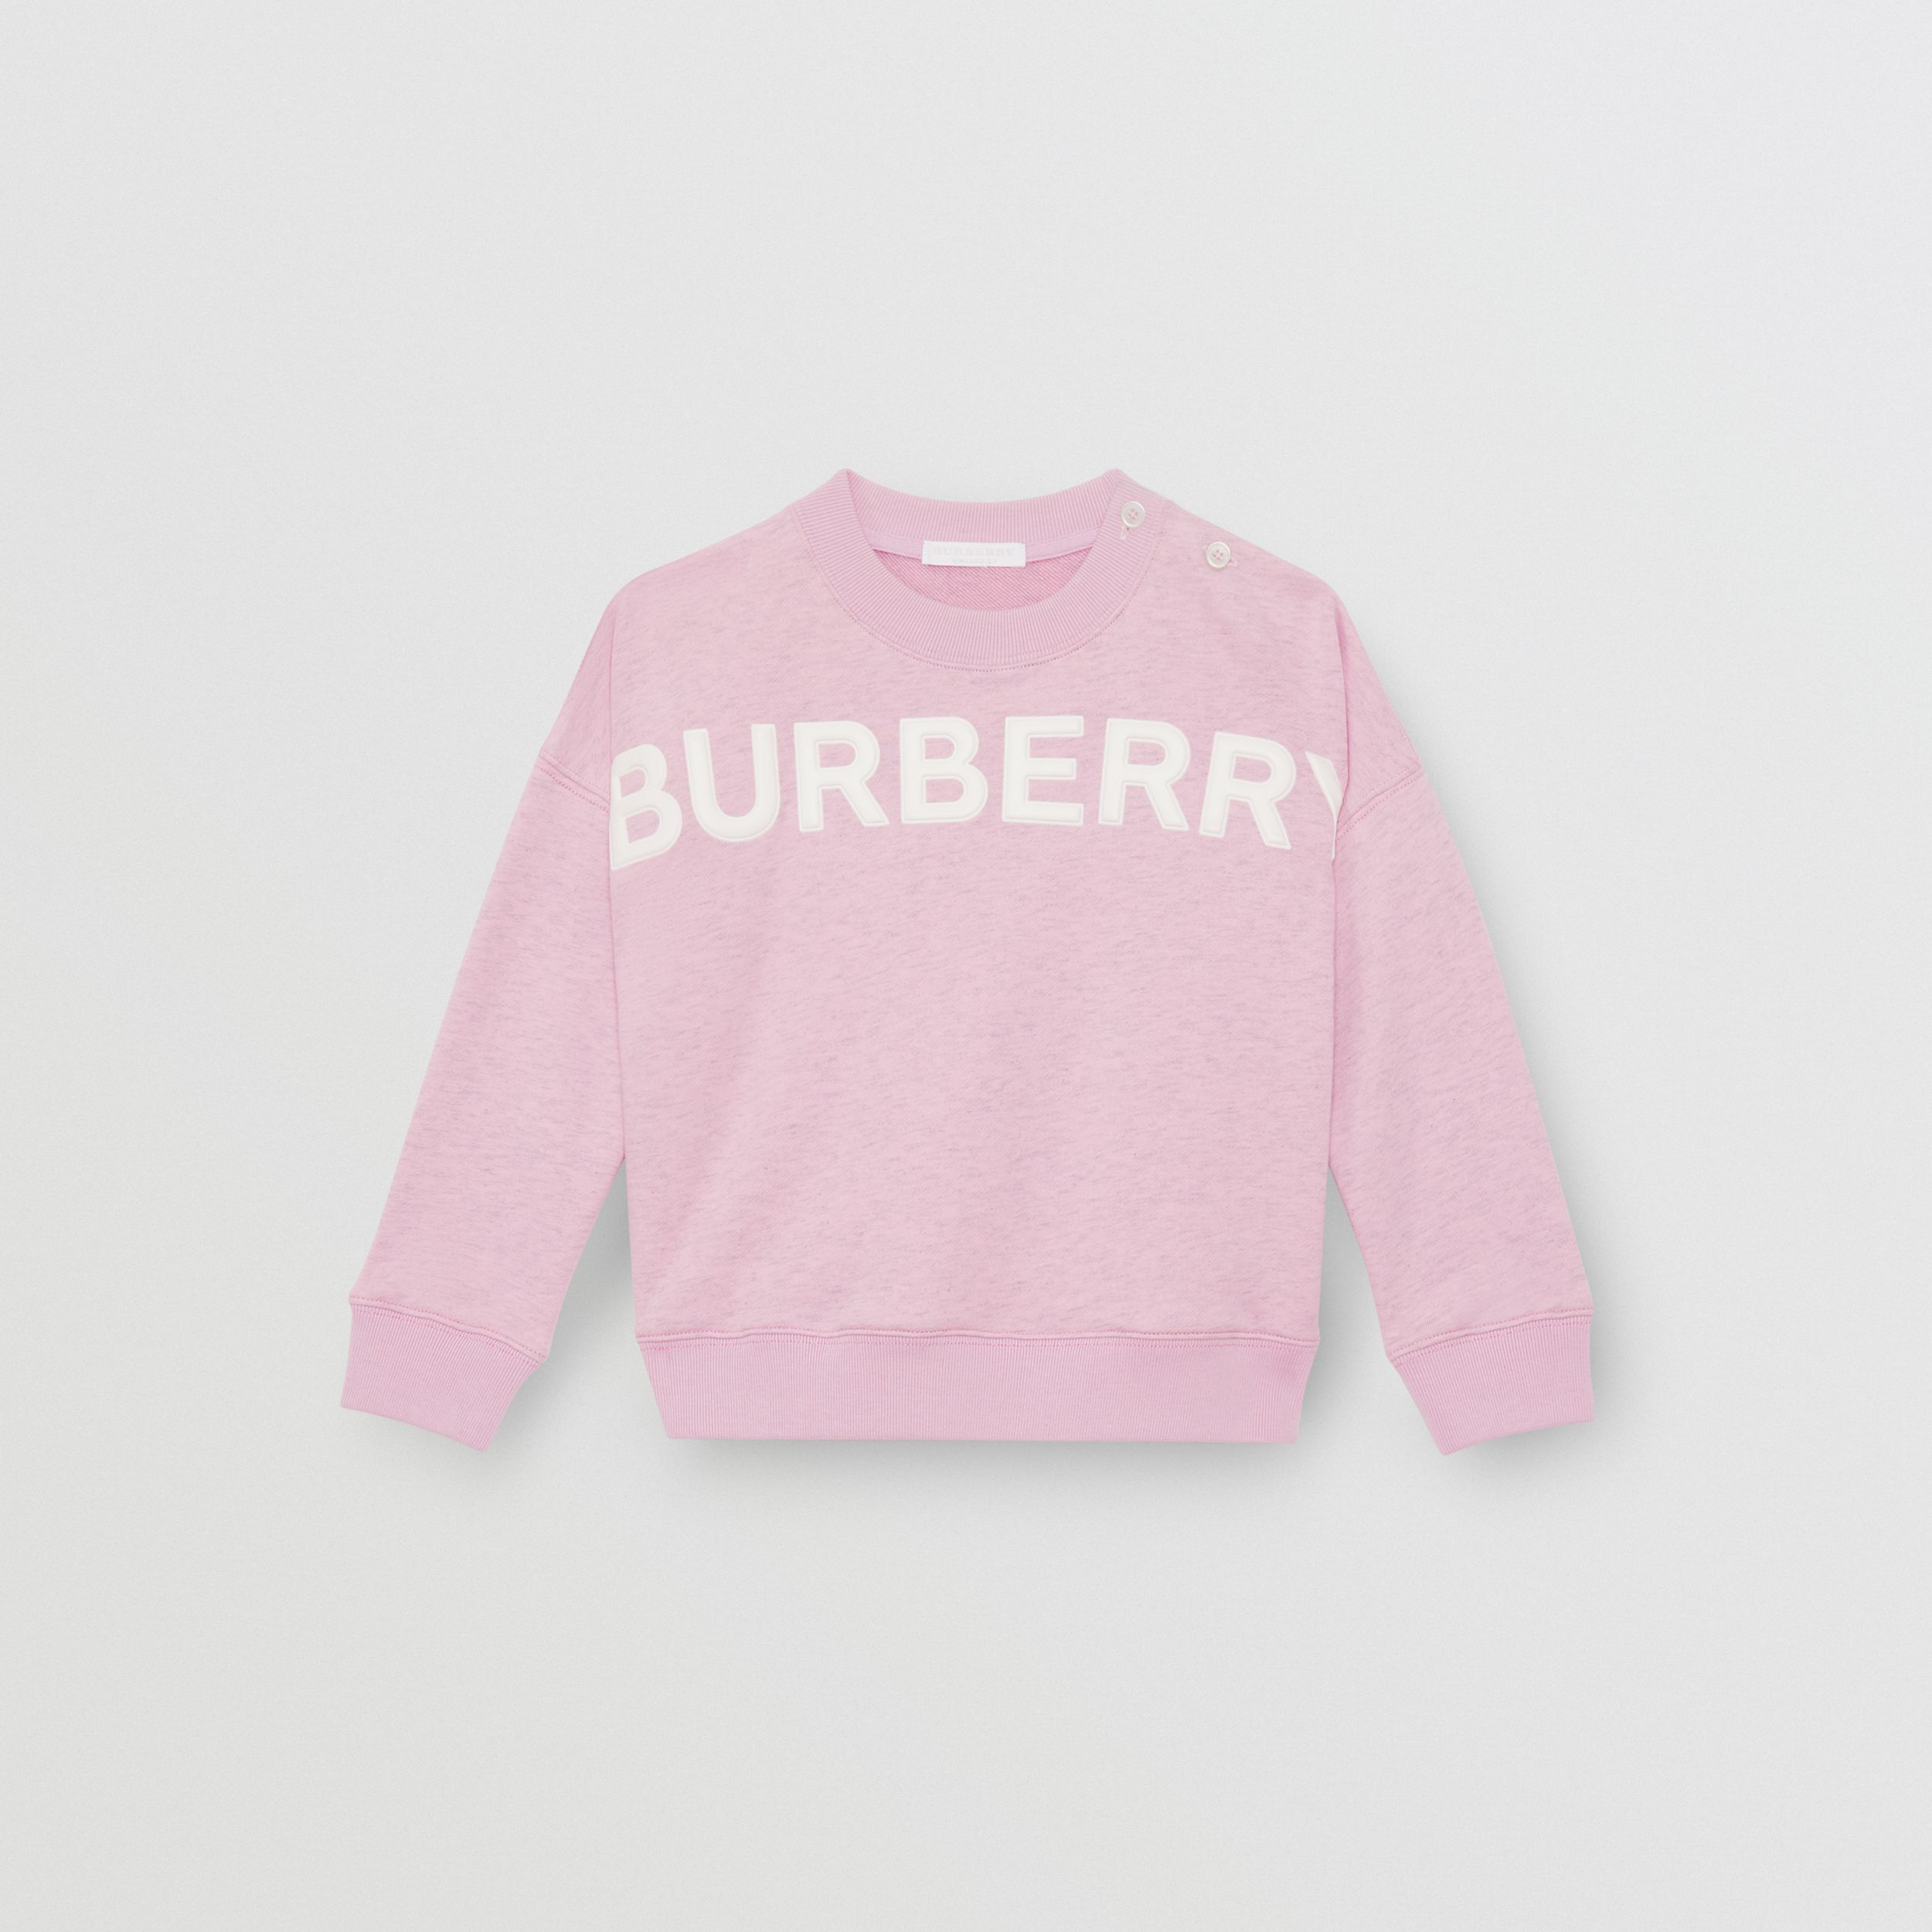 Logo Detail Cotton Sweatshirt in Pale Neon Pink | Burberry - 1